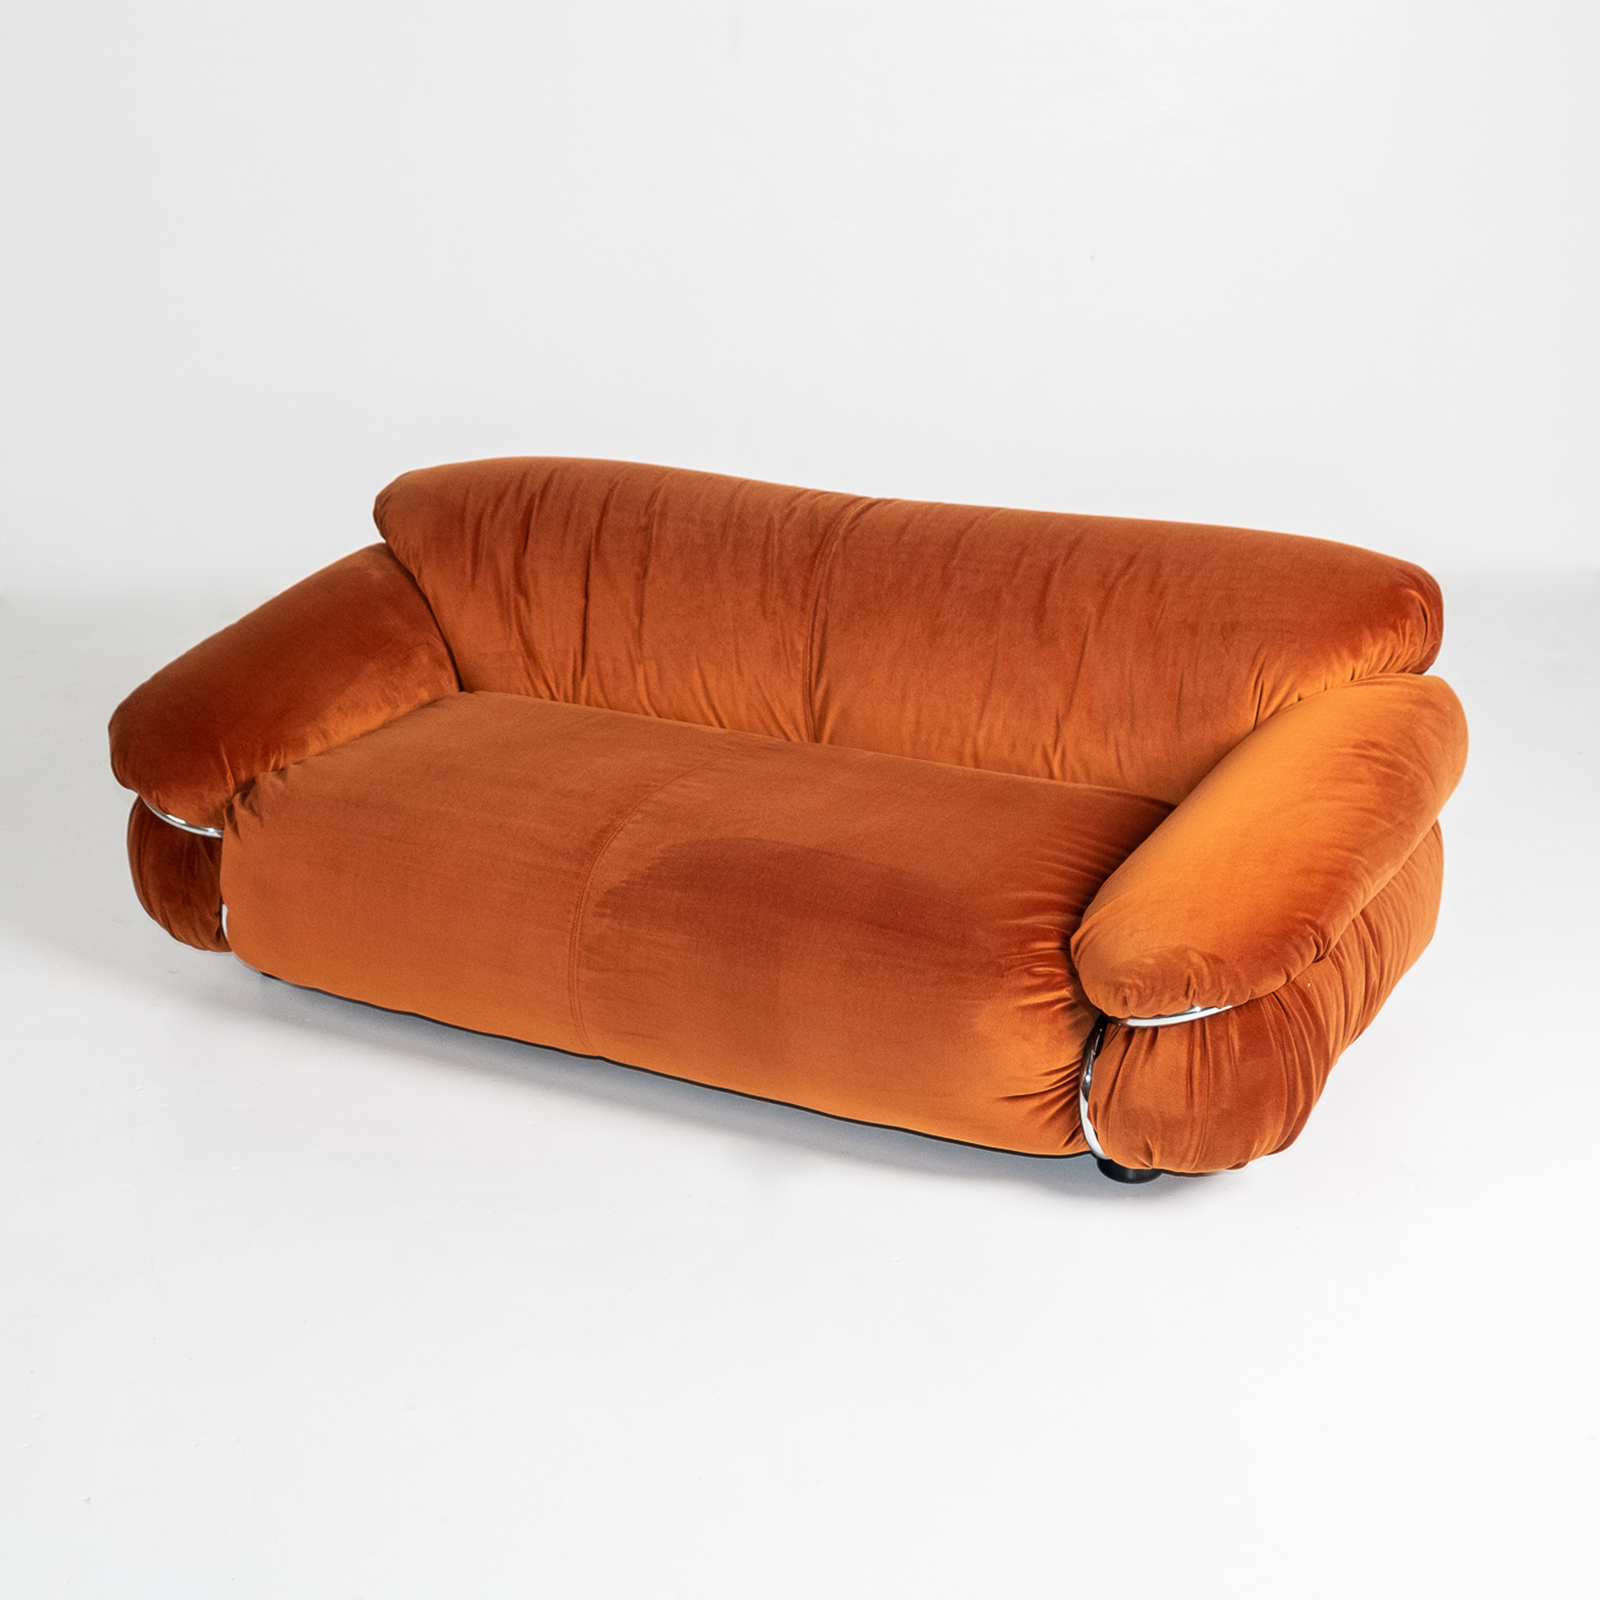 Model 595 Sesann Sofa By Gianfranco Frattini For Cassina, 1970s, Italy Hero